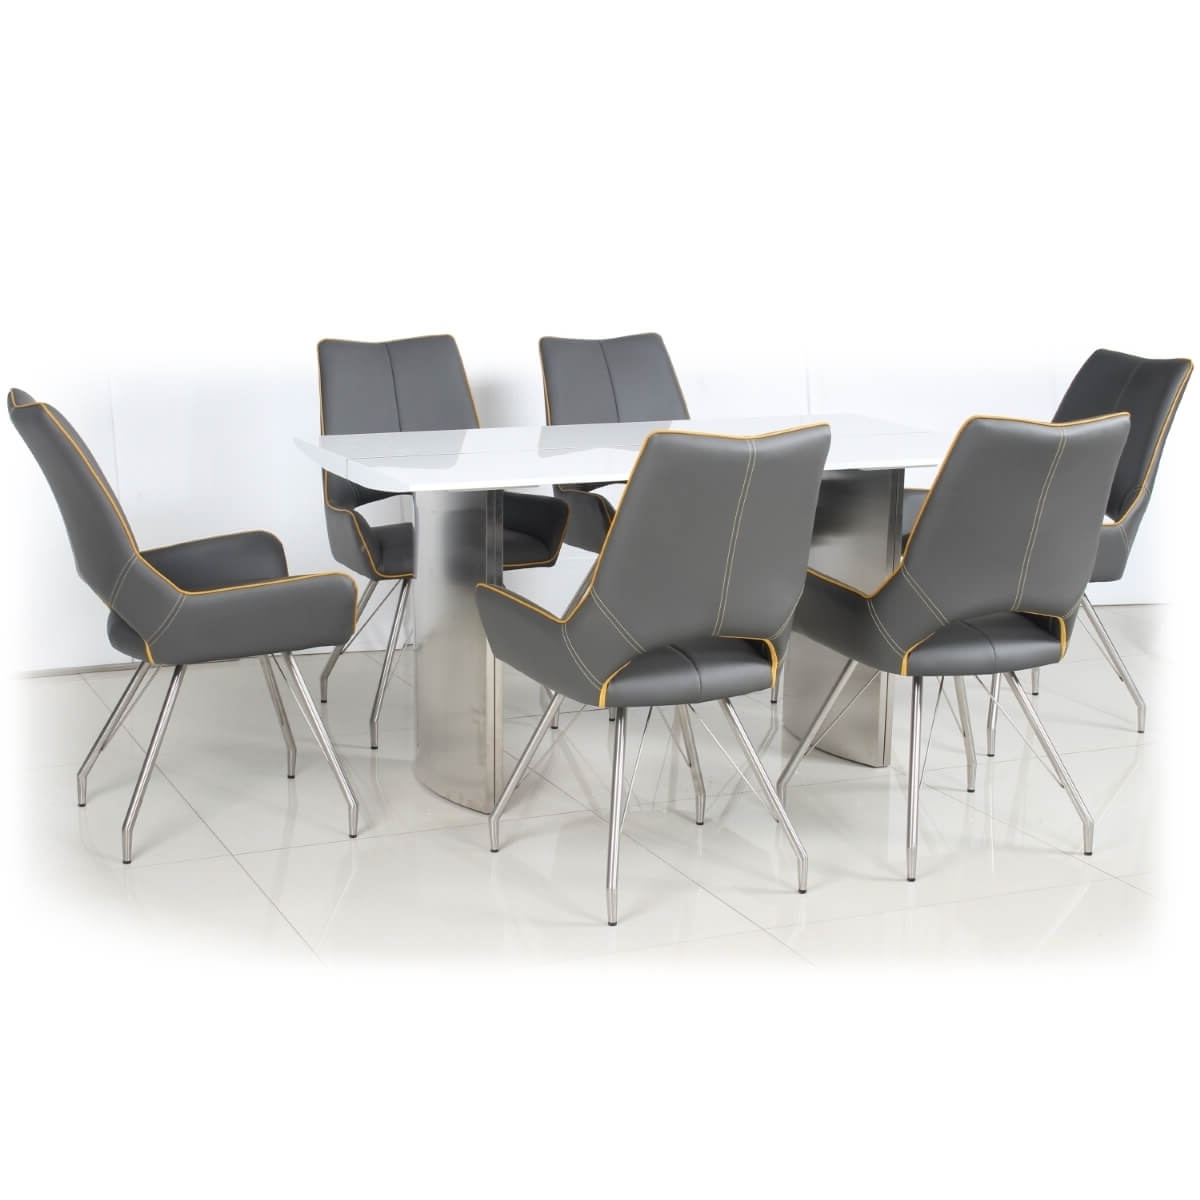 White Gloss Dining Chairs With Regard To Recent Dining Set – White High Gloss Dining Table And 6 Grey Dining Chairs (View 21 of 25)